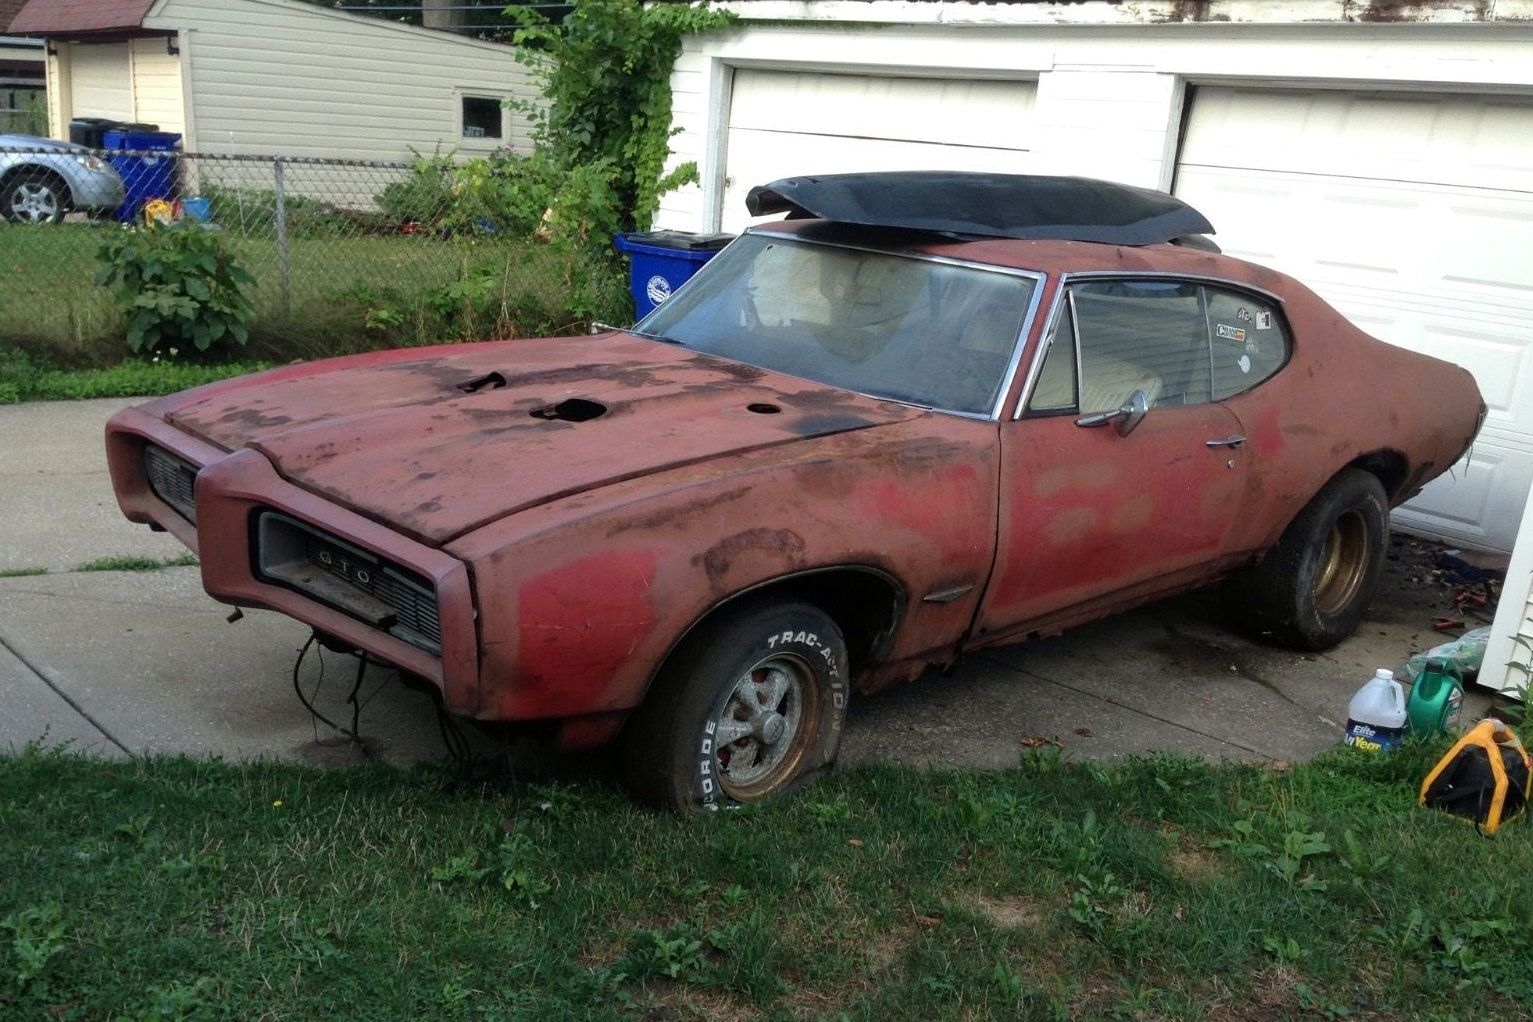 Old Junk Cars For Sale >> Rusty Old Goat 1968 Pontiac Gto Barn Finds Junkyard Cars Rusty